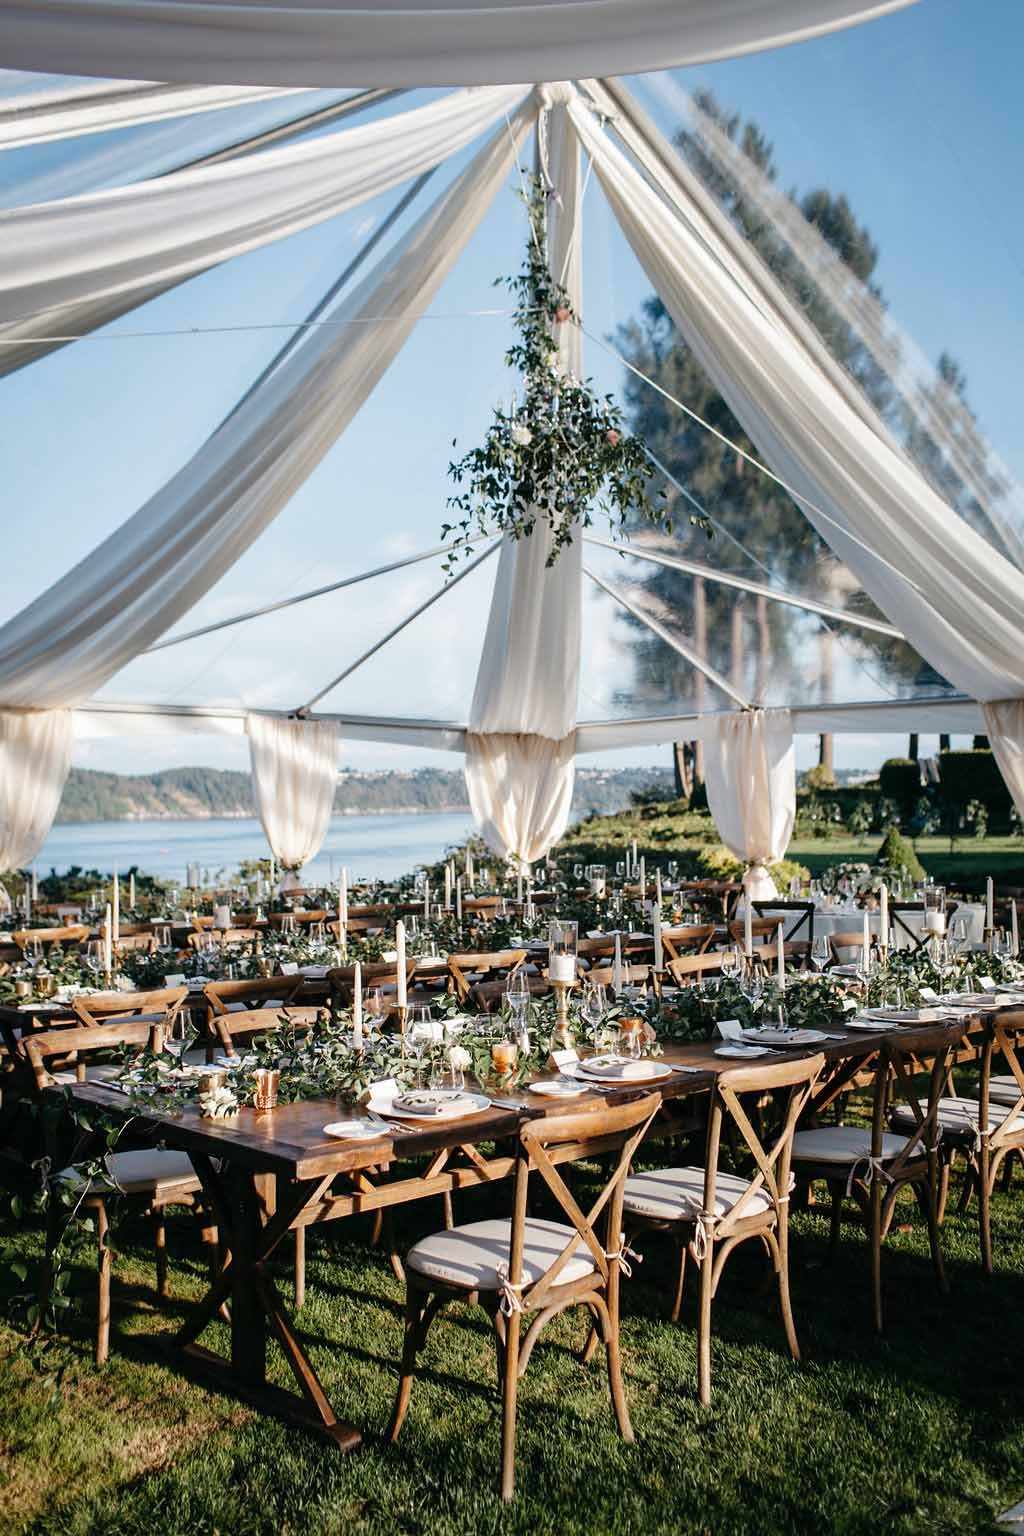 Long wooden tables with Vineyard chairs in clear tent with draping - Elegant Seattle Garden Wedding by Flora Nova Design Seattle